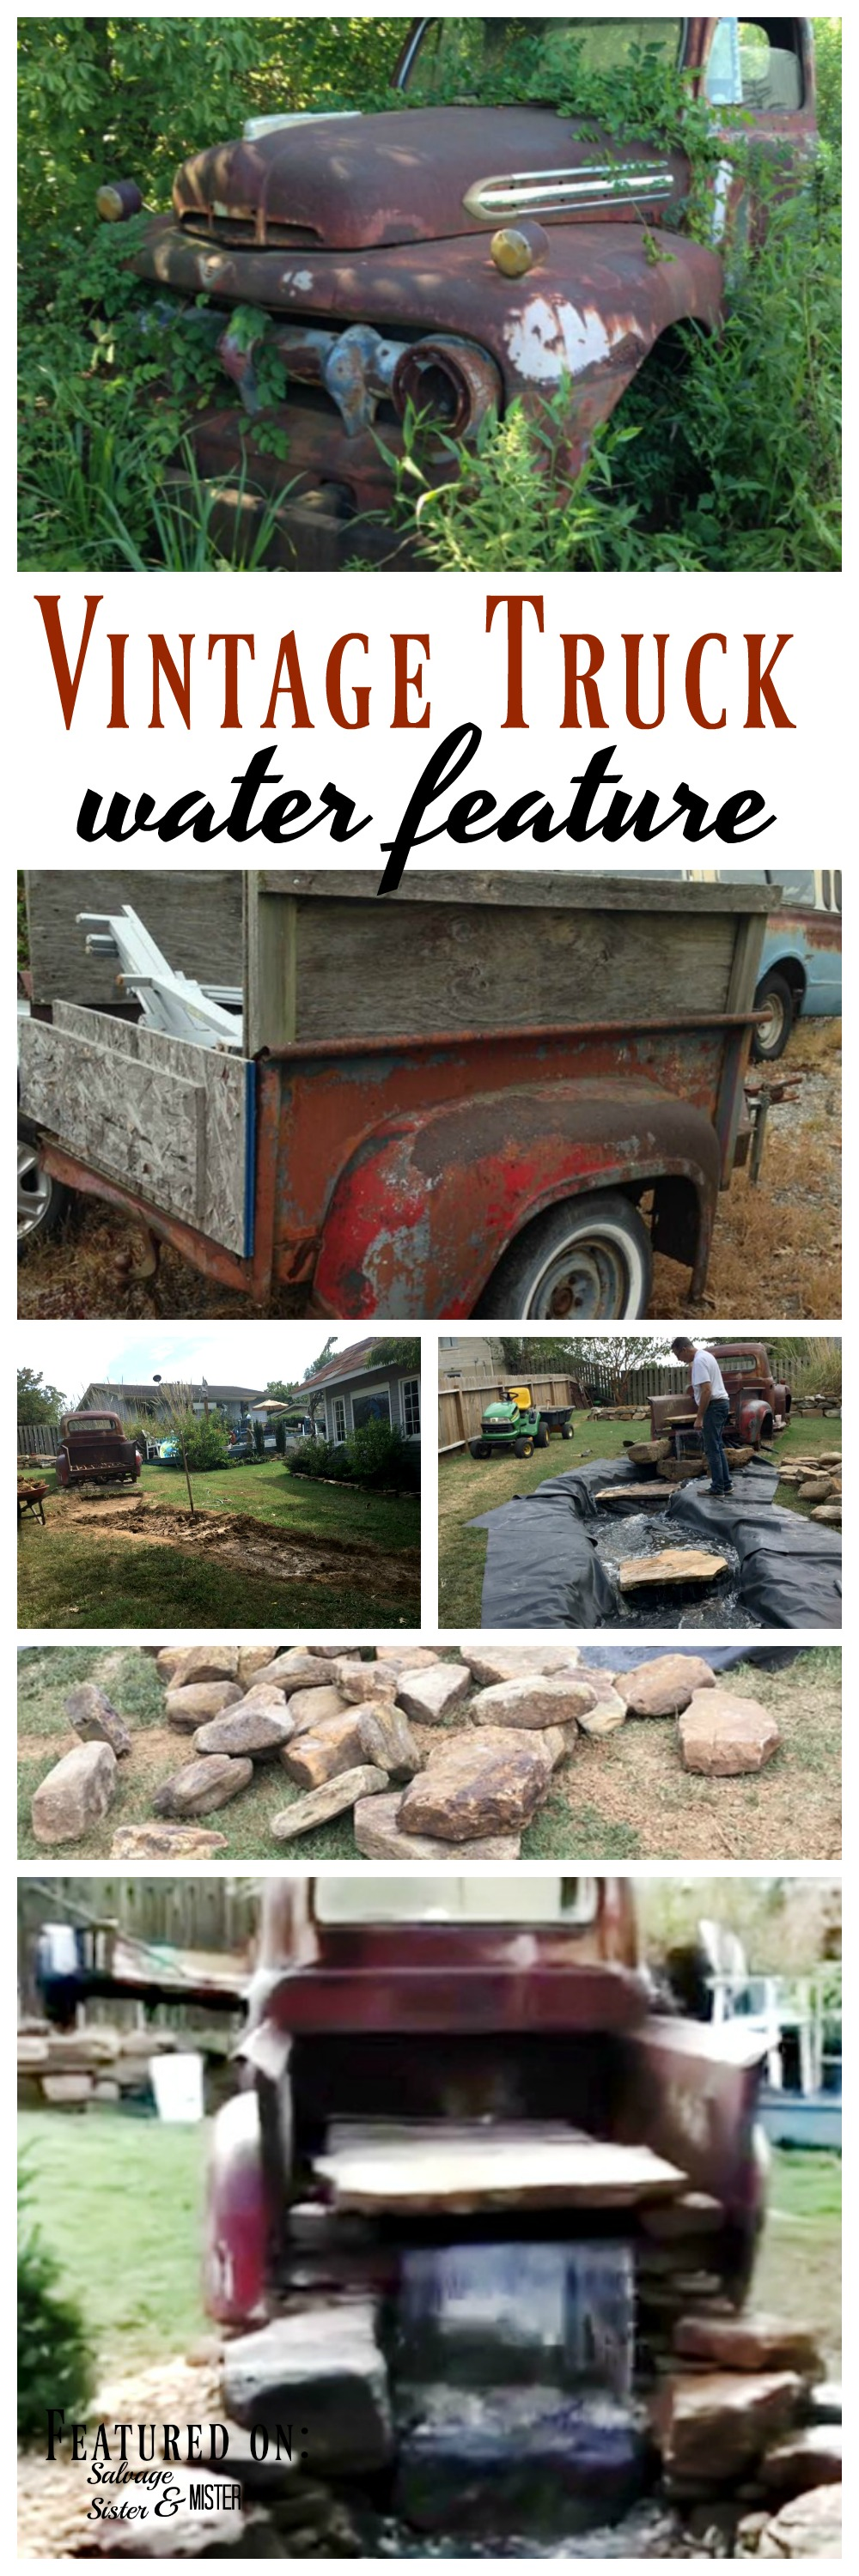 vintage truck water feature and cottage salvage sister and mister